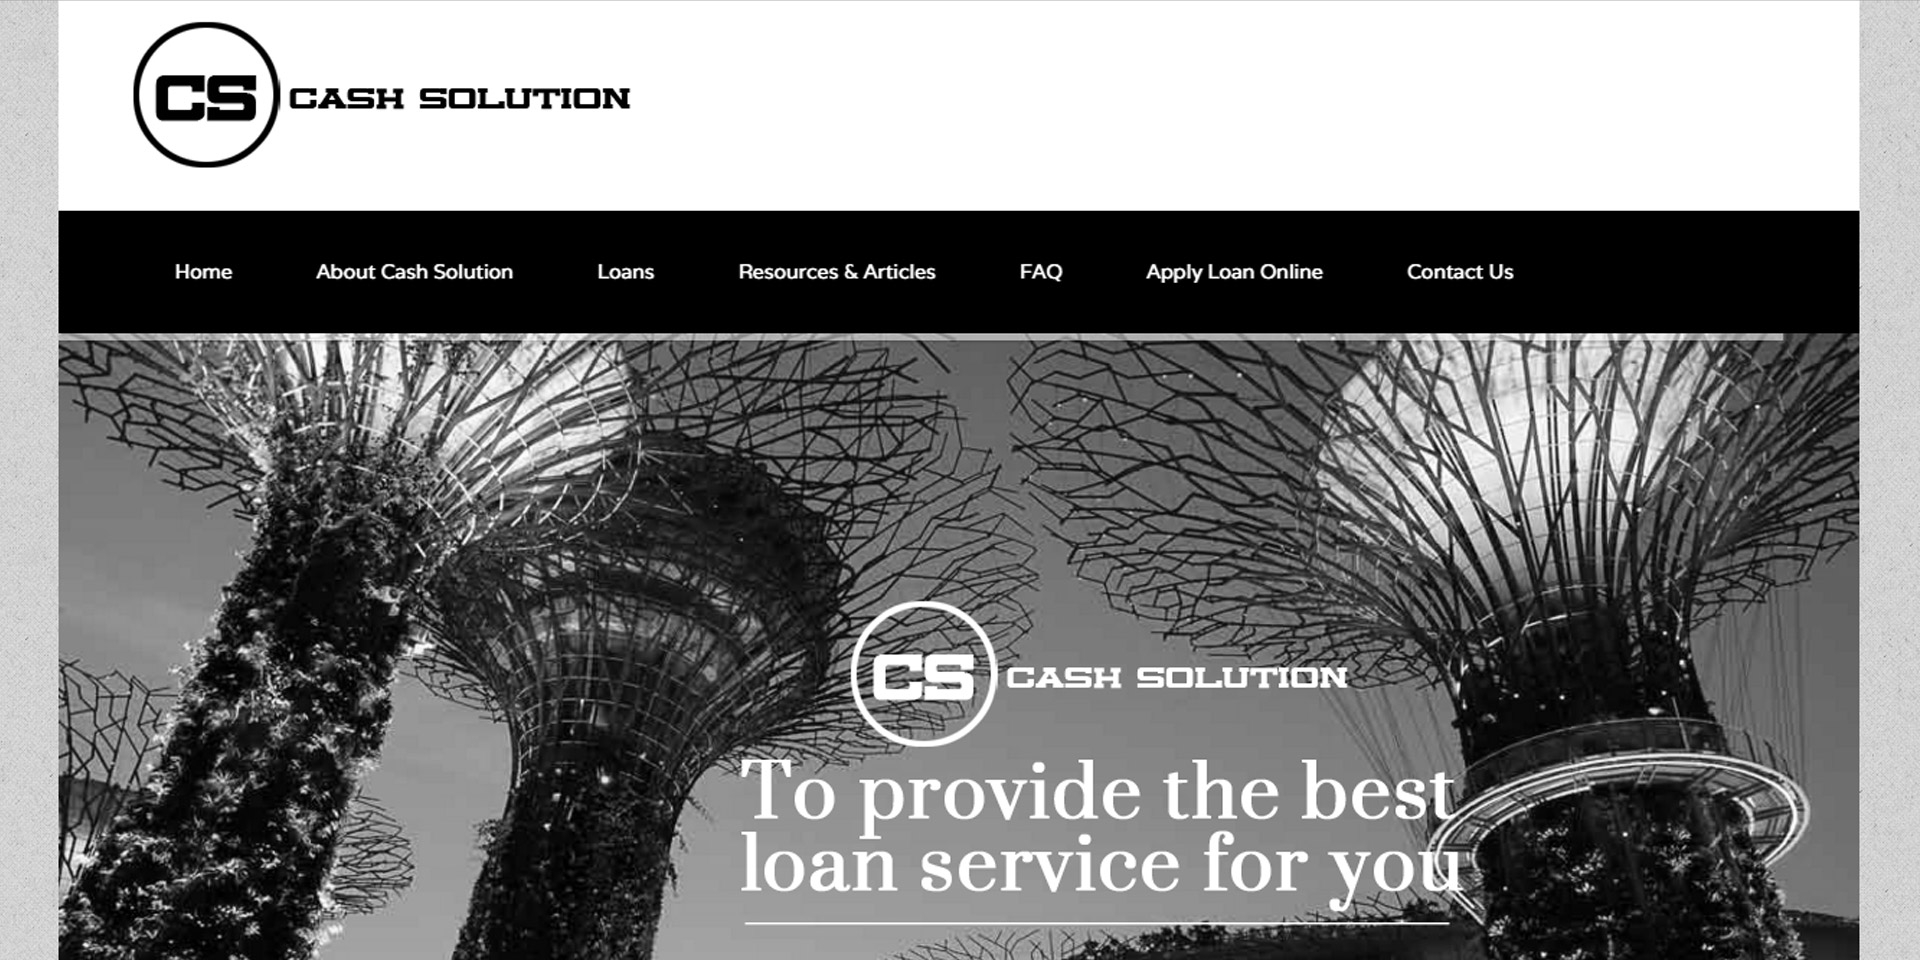 CSS Payday Loans